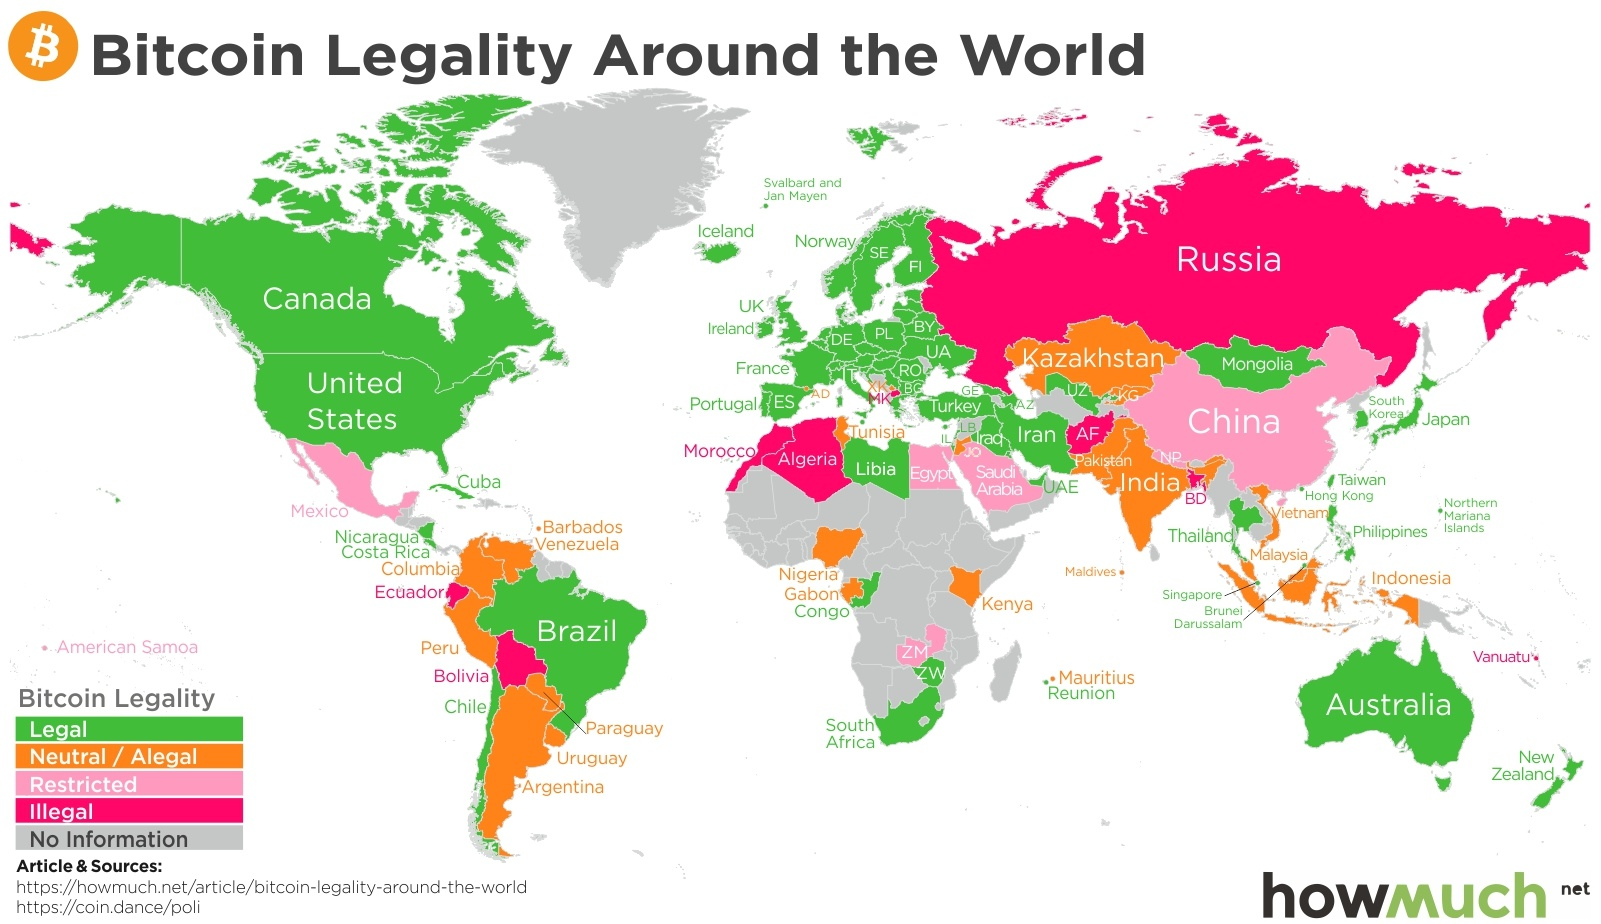 Mapped bitcoins legality around the world gumiabroncs Image collections